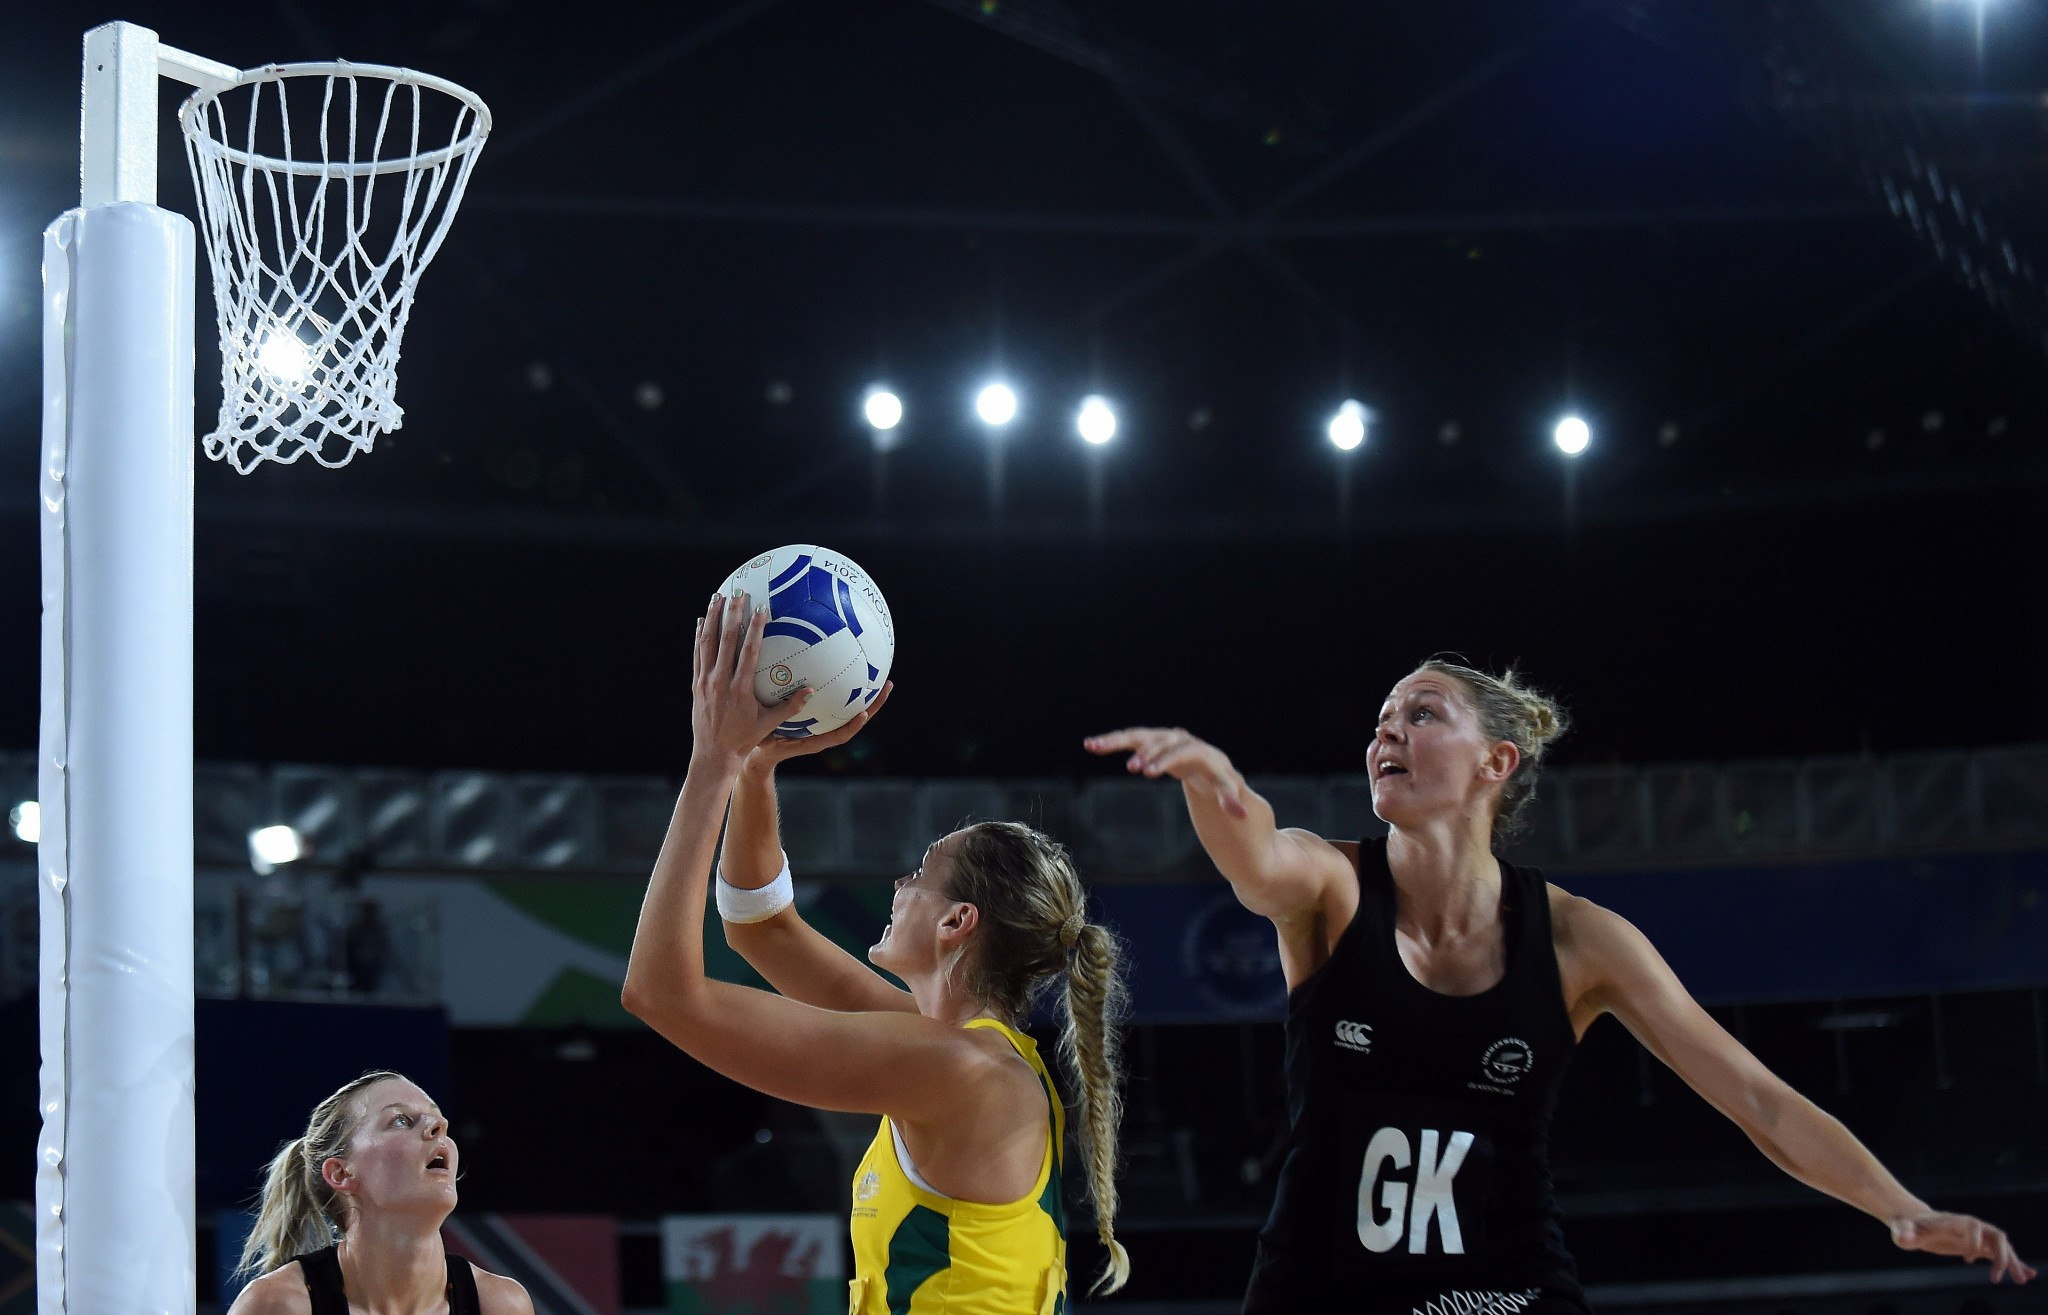 Draw procedure and schedule for Gold Coast 2018 netball tournament unveiled